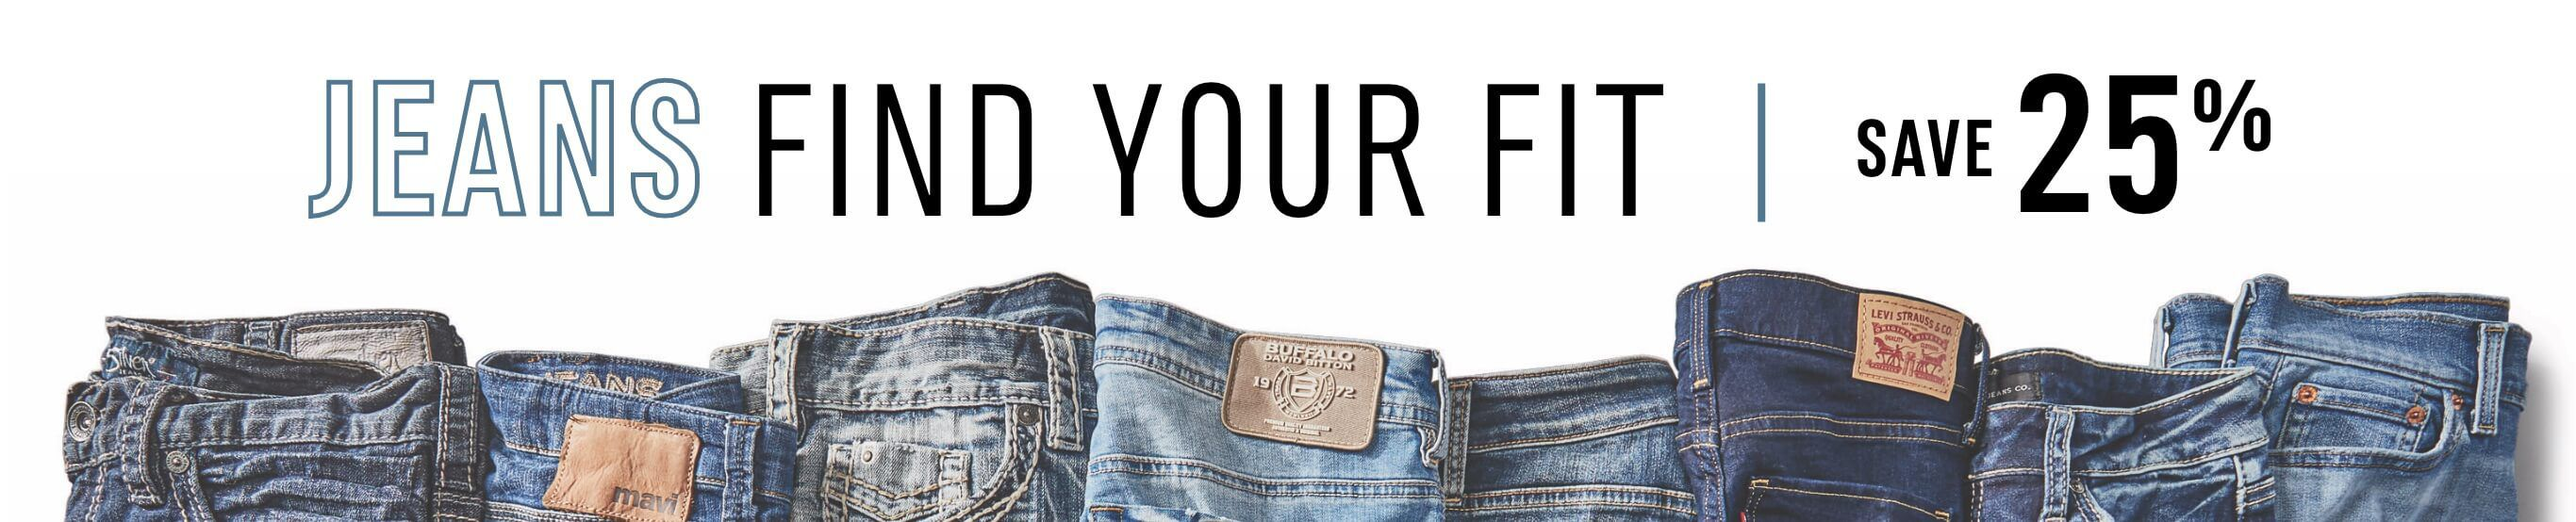 Jeans. Find your fit. Save 25%!